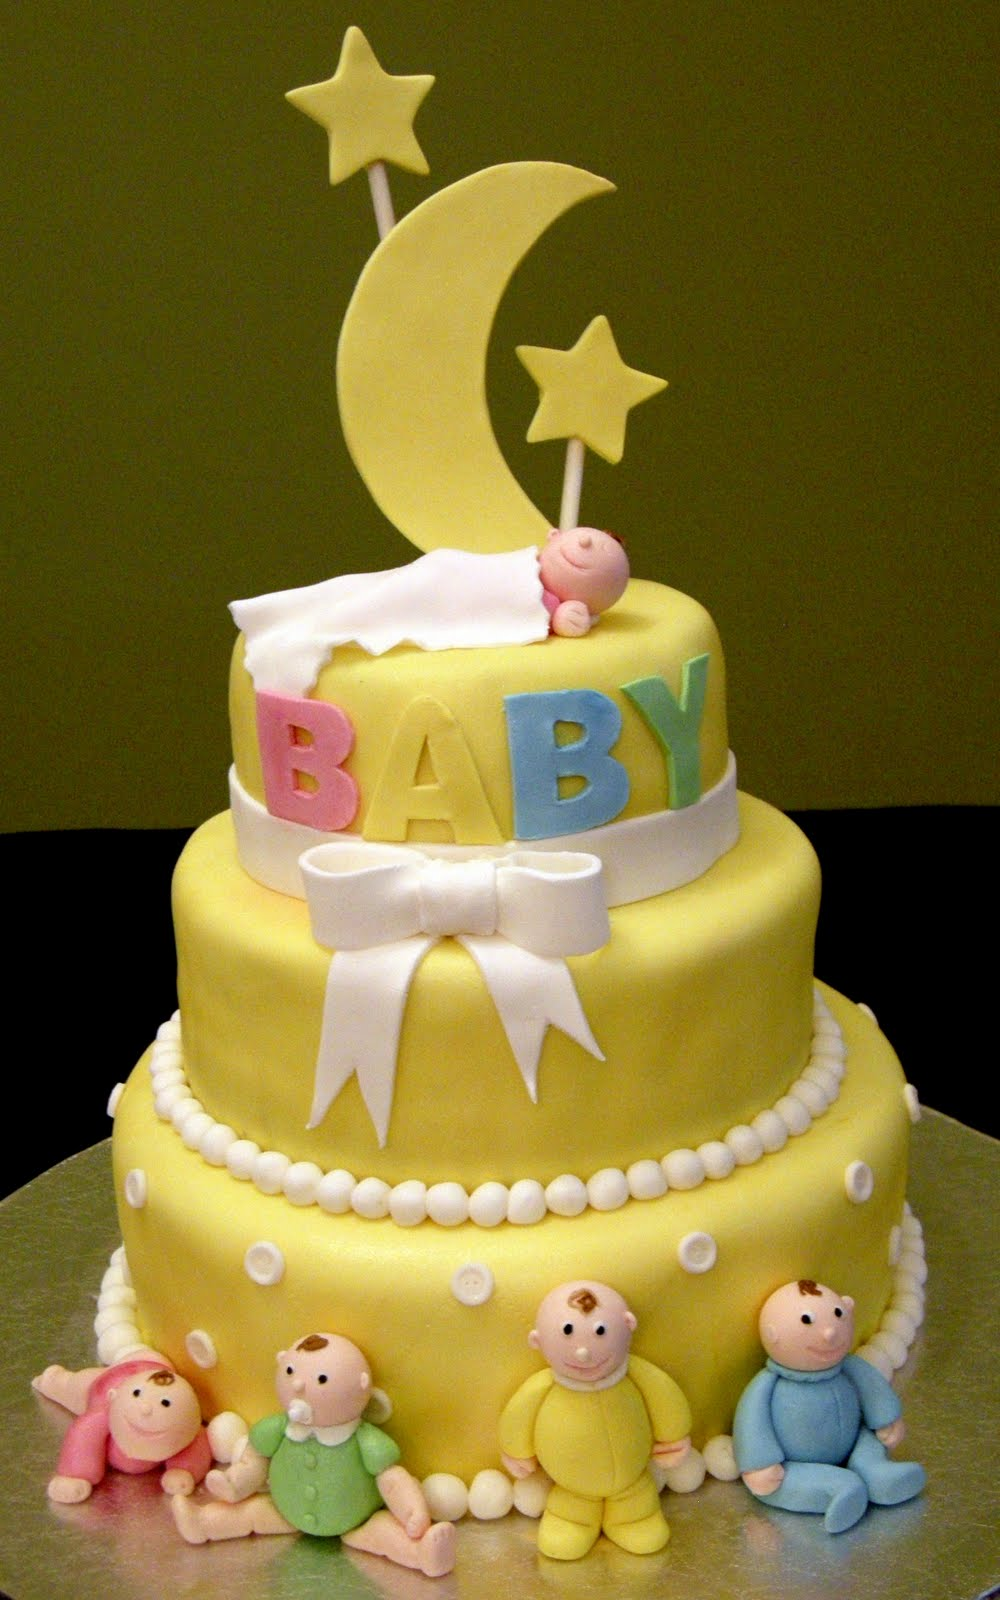 Harshi S Cakes Amp Bakes Over The Moon With Joy 3 Tier